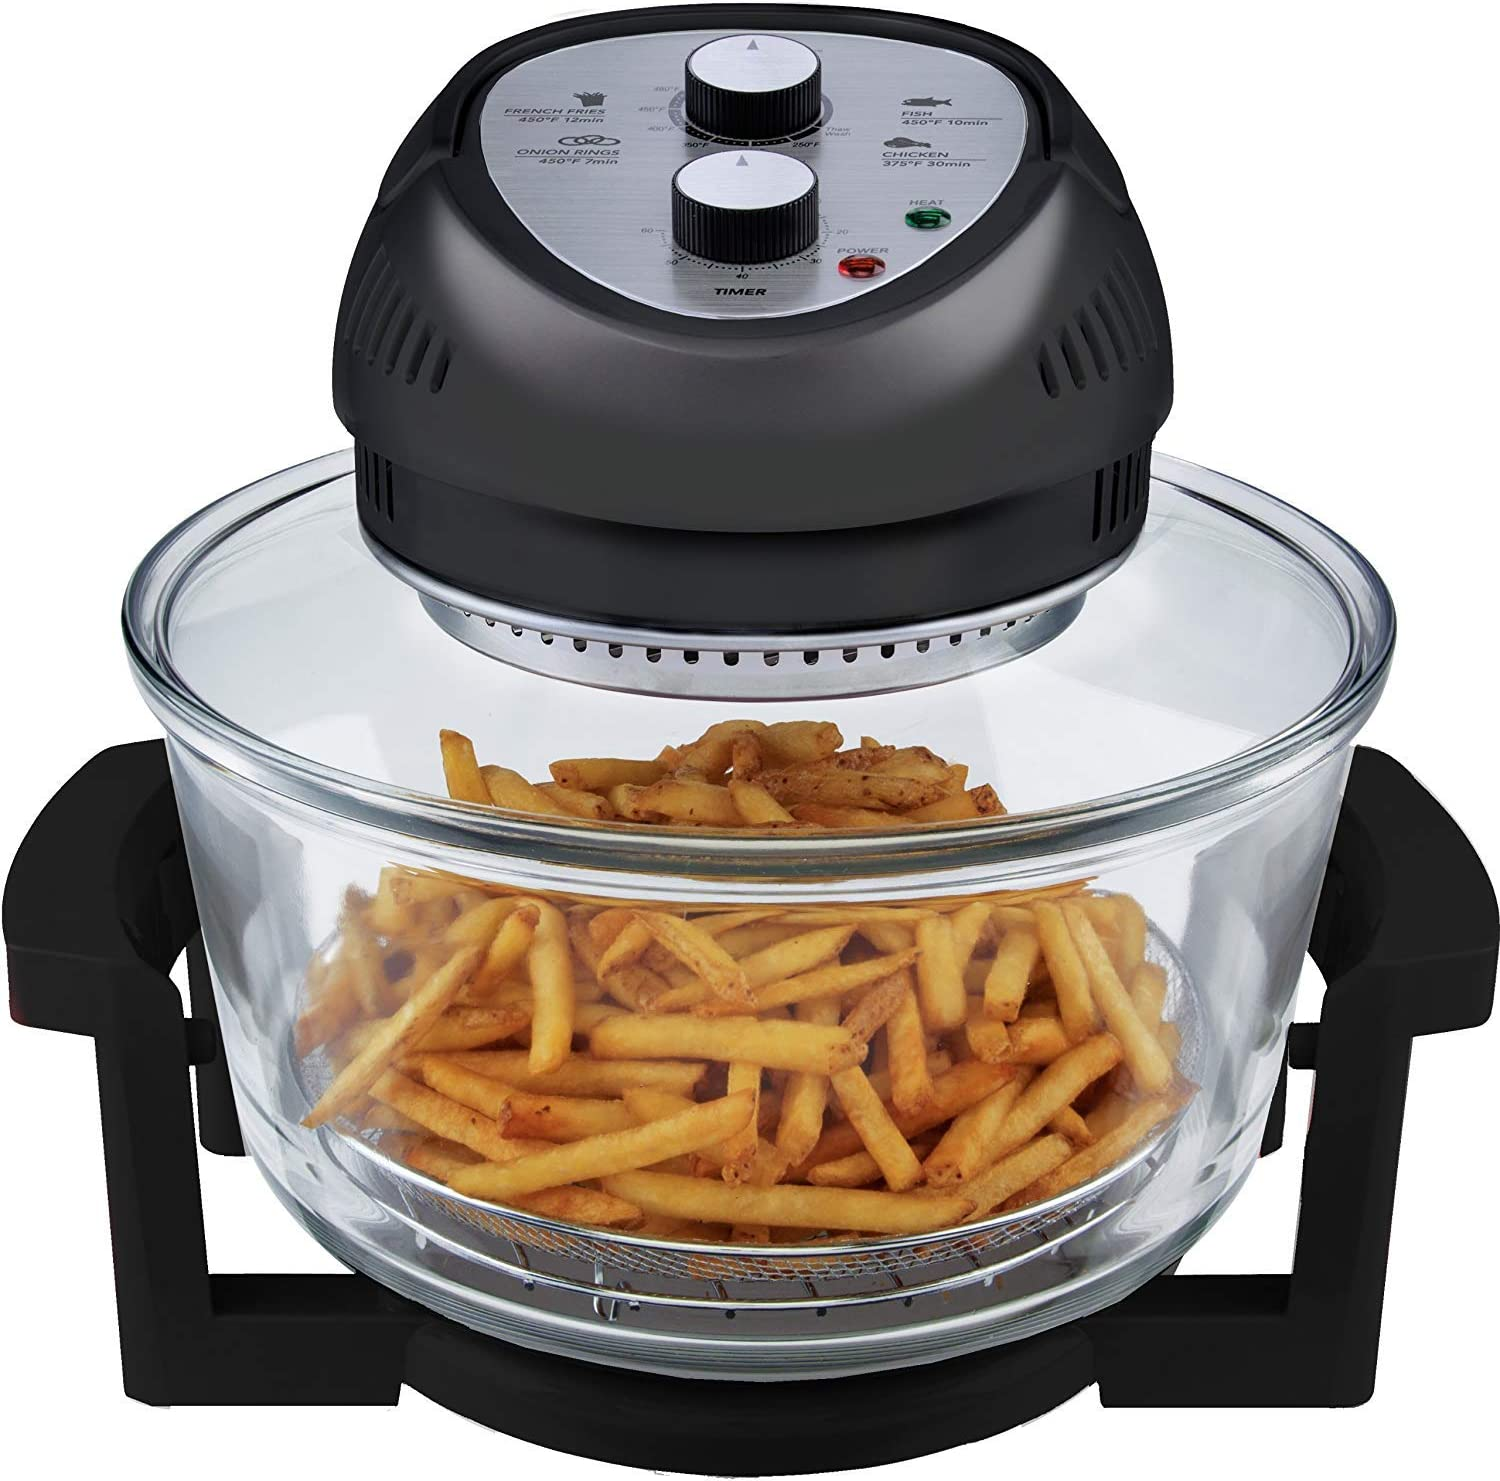 Big Boss Oil-less Air Fryer, 16 Quart, 1300W, Easy Operation with Built in Timer